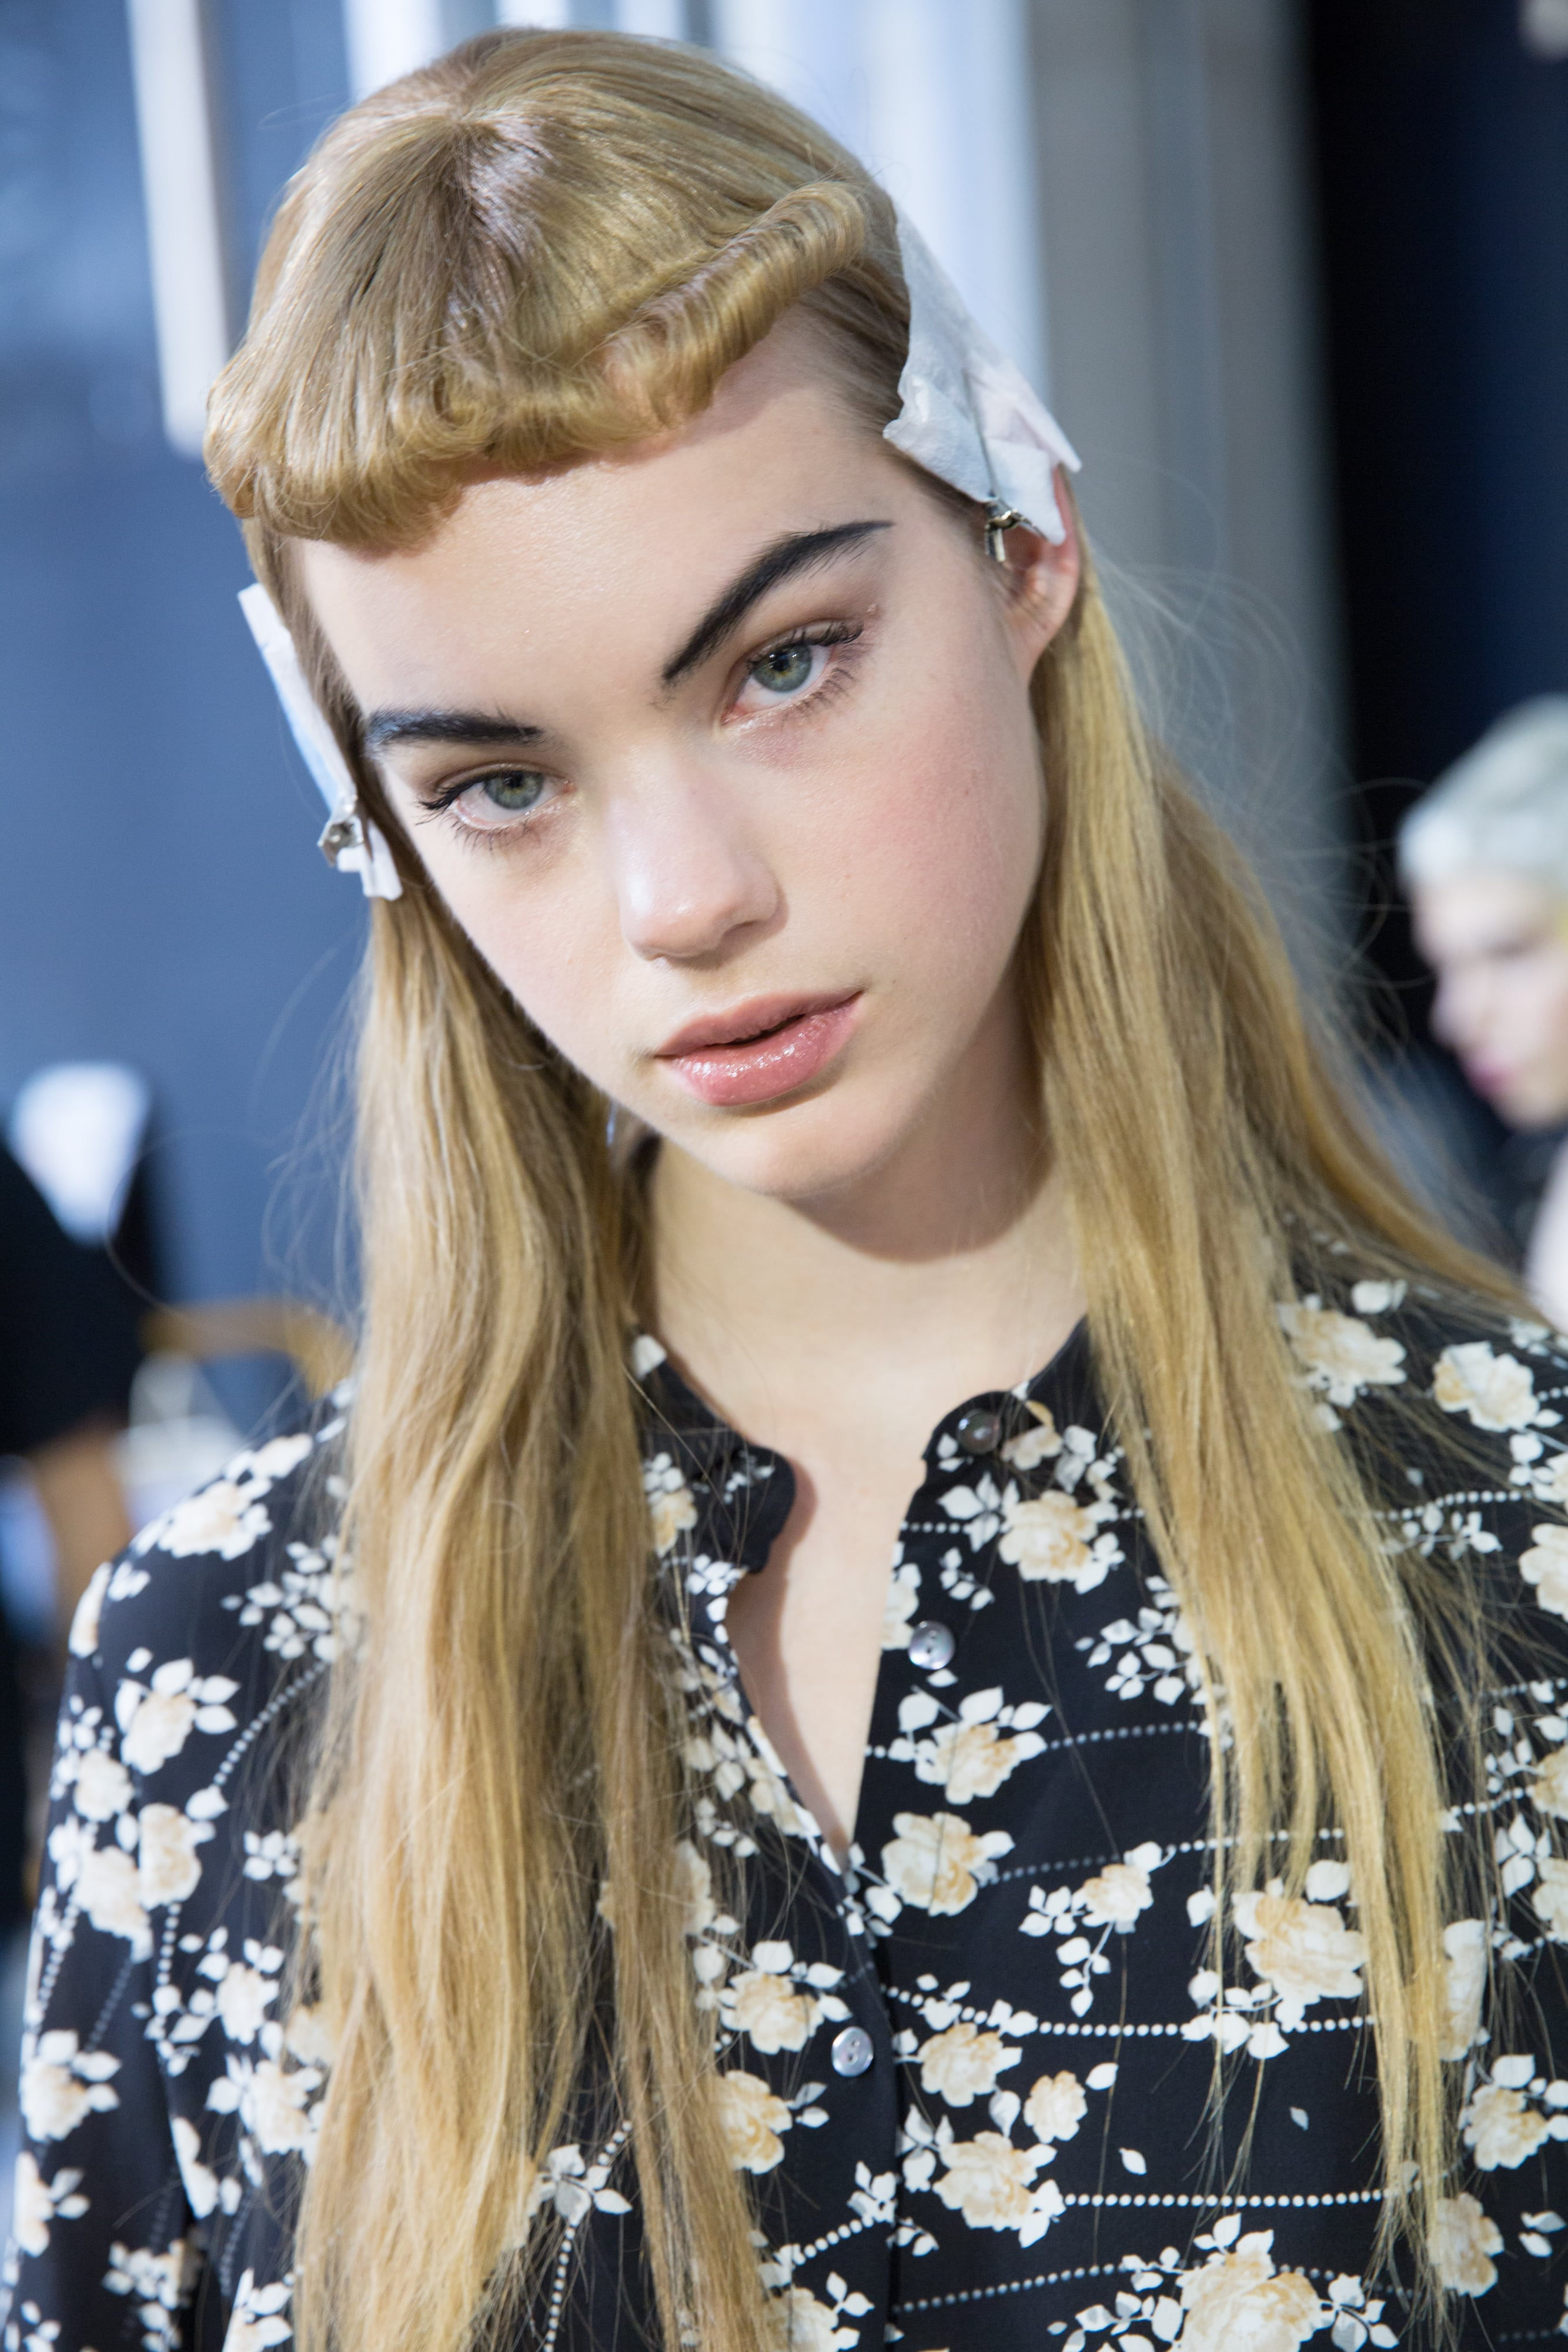 Short bangs: Blonde model with long hair and retro rolled micro short fringe backstage at fashion show.